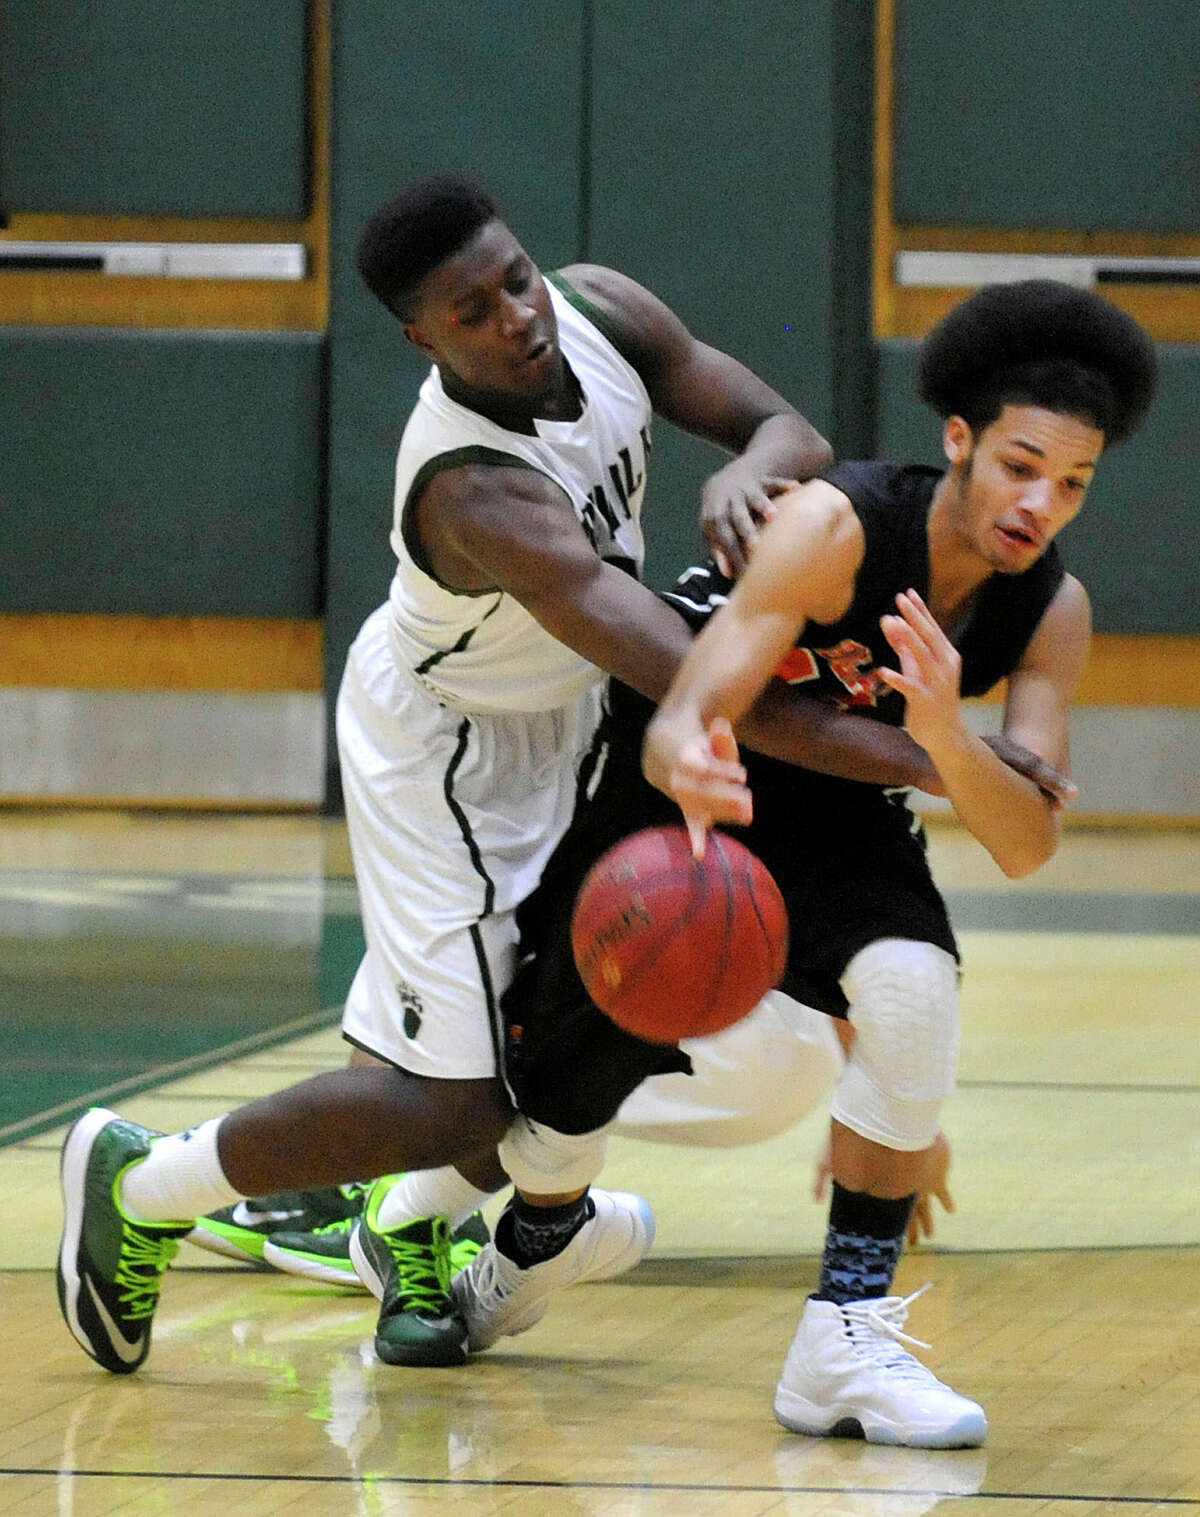 Norwalk's Bryant Bracey and Stamford's Gianni Carwin battle over the loose ball during their basketball game at Norwalk High School in Norwalk, Conn., on Tuesday, Feb. 10, 2015. Norwalk won, 56-51.